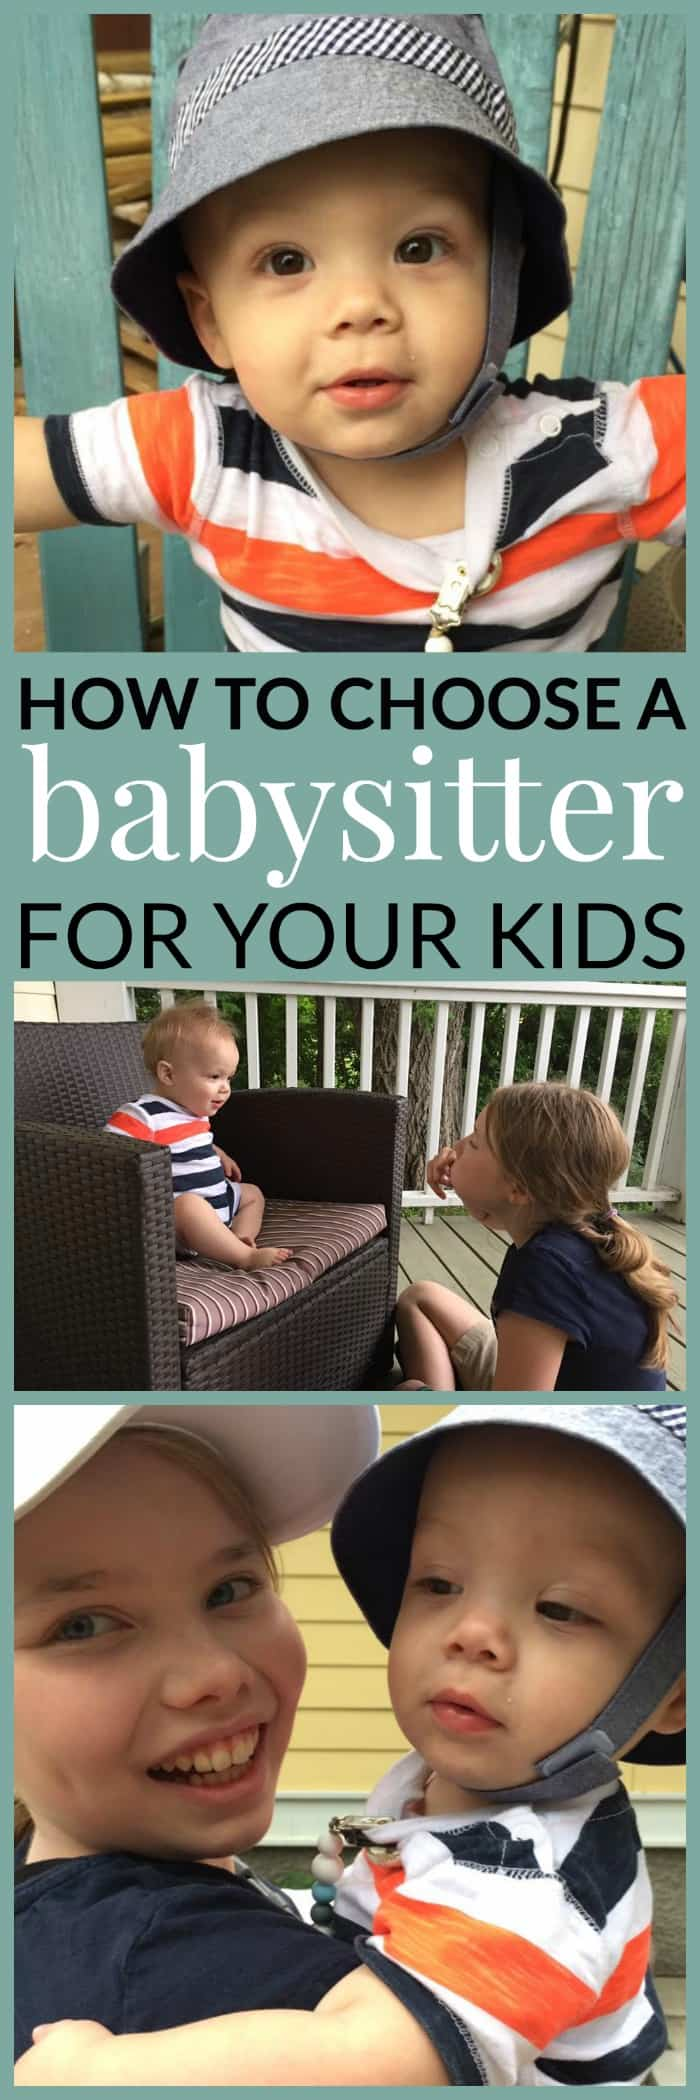 How to choose a babysitter for babies: useful tips and special requirements 88